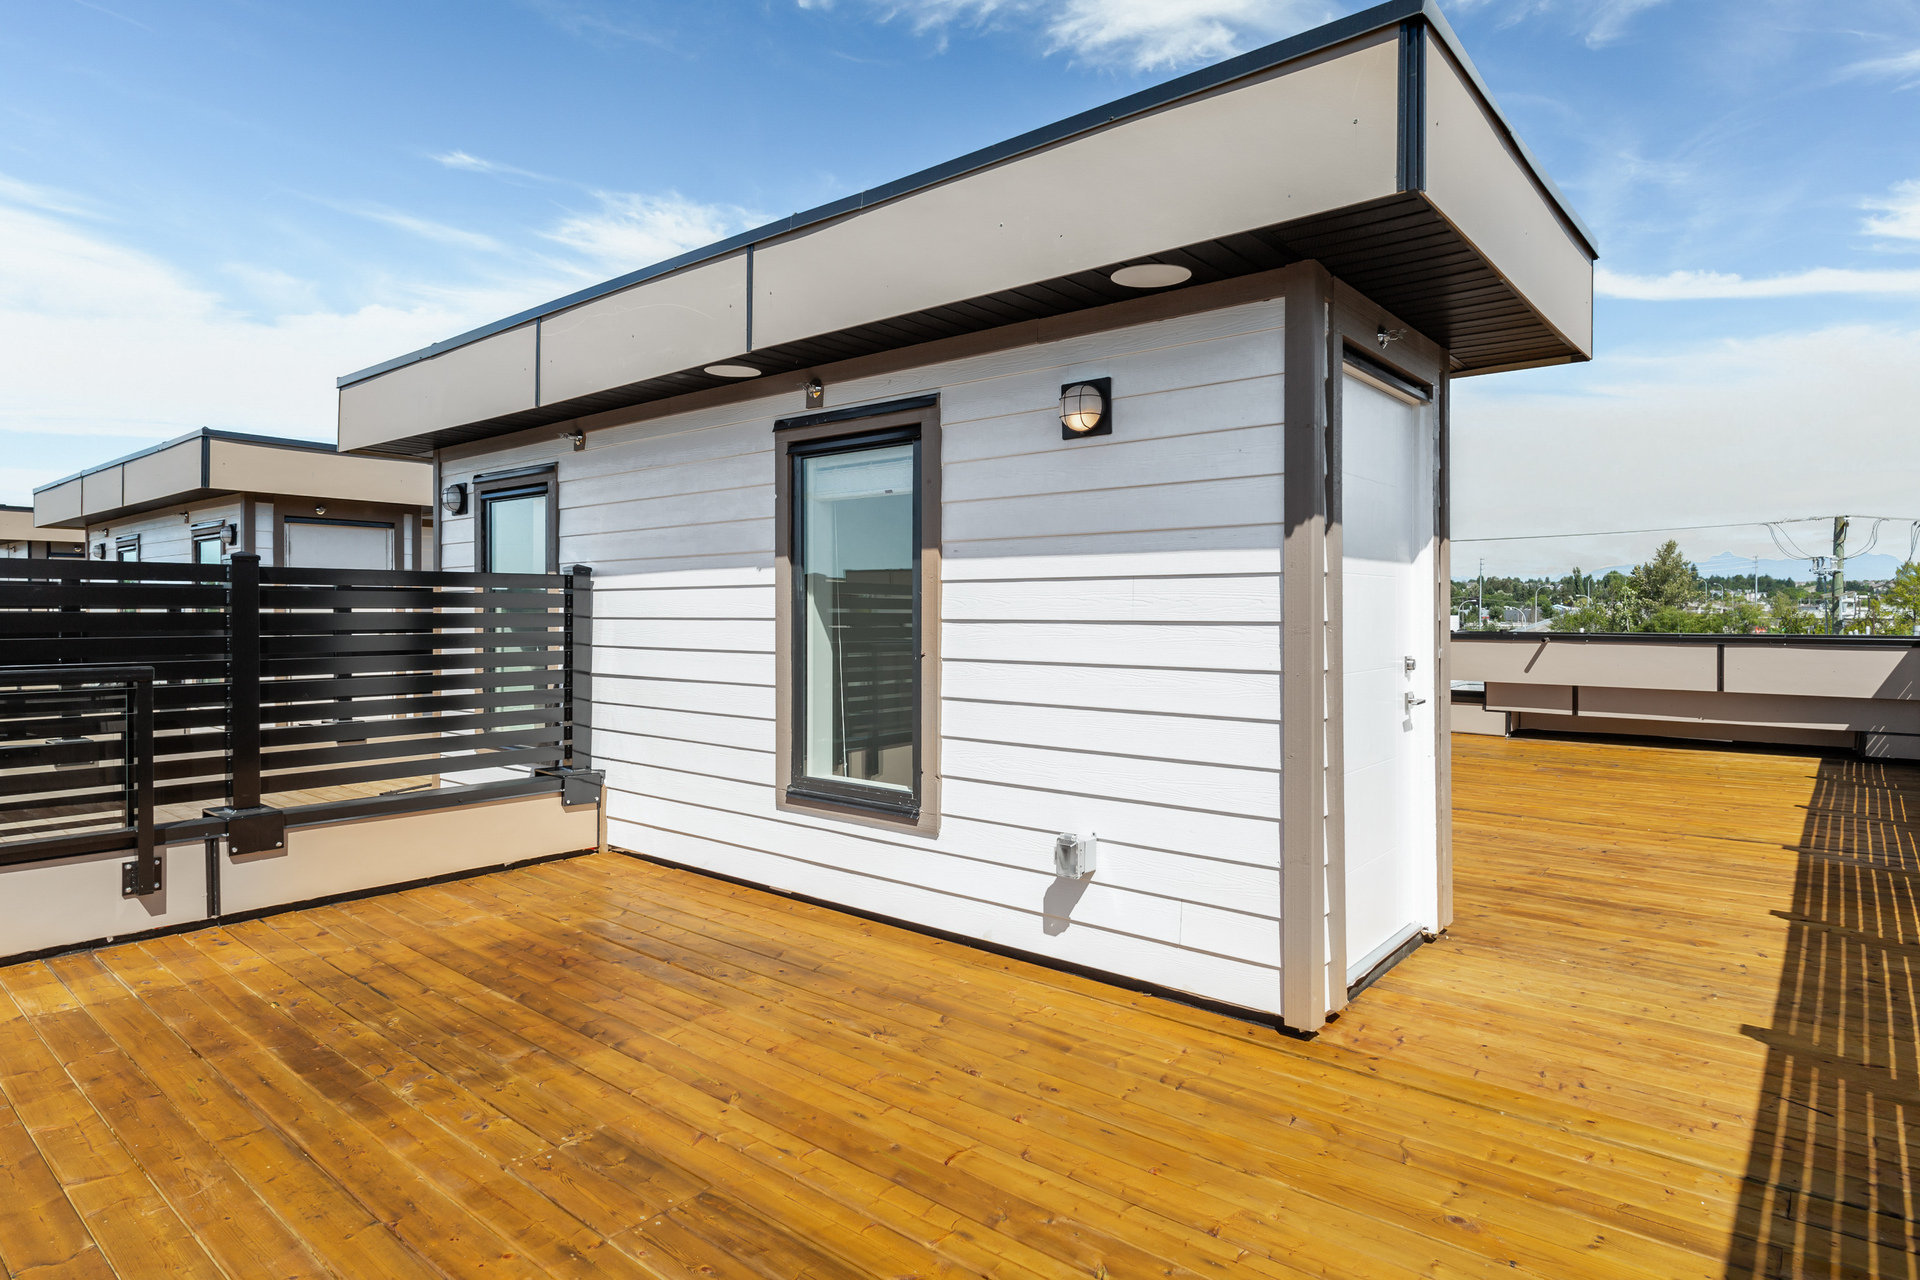 Rooftop Terrace - 19624 56 Ave Langley City, BC V3A 3X6 Canada!